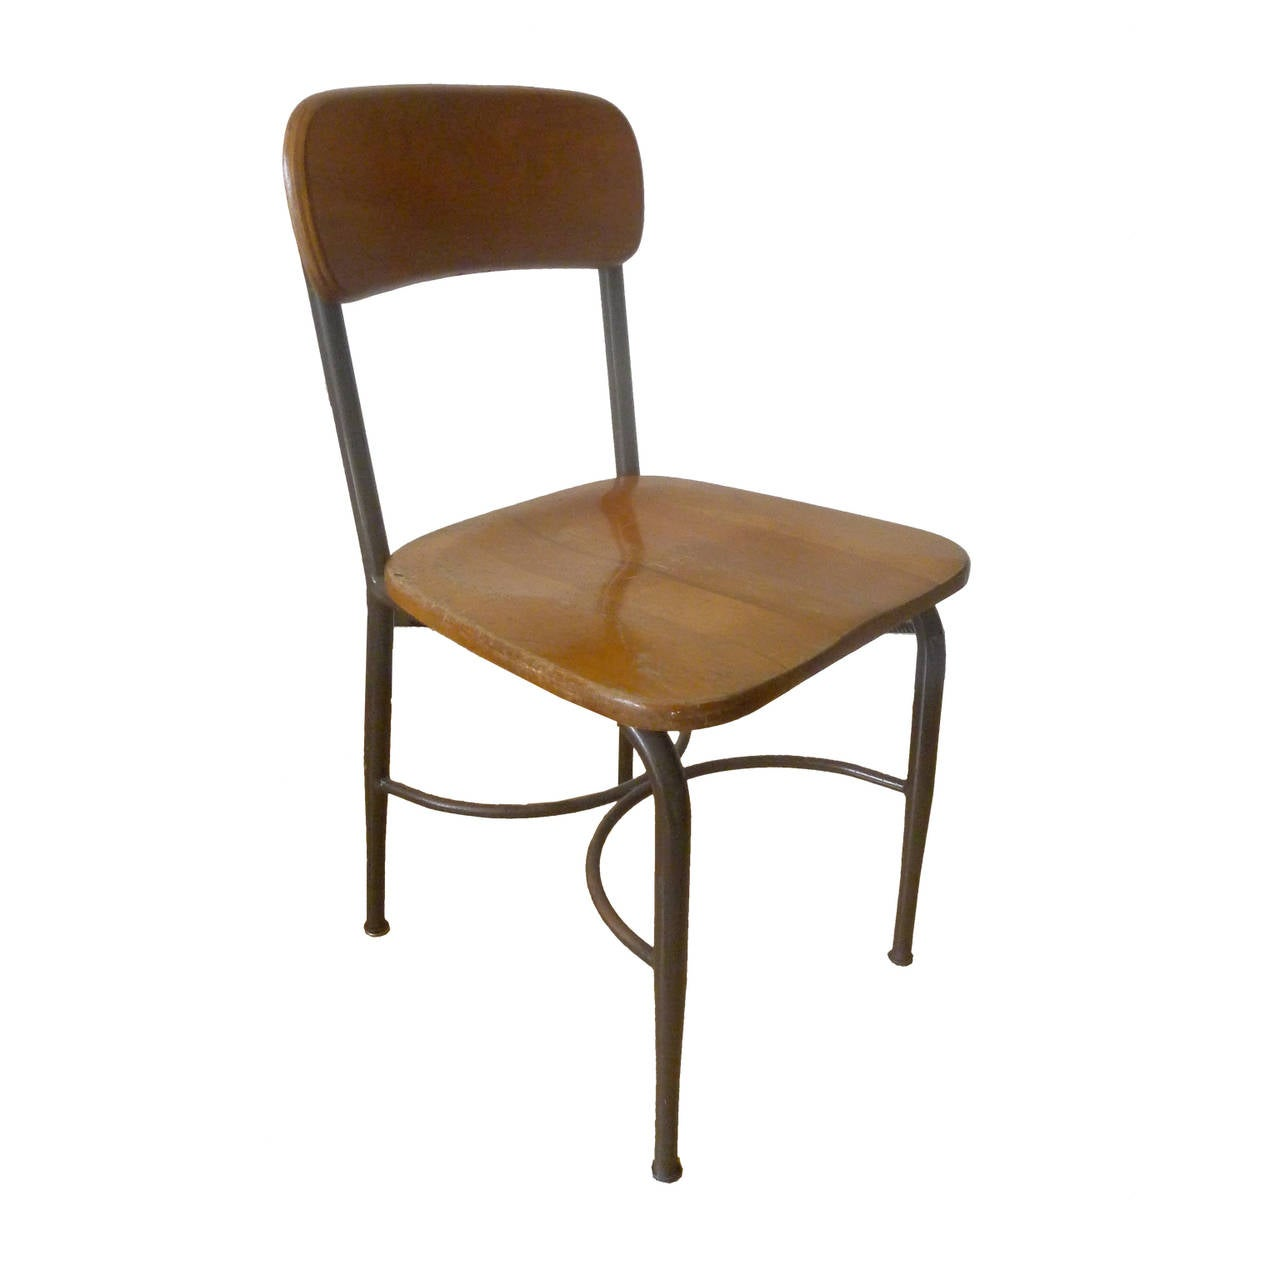 heywood wakefield chairs ak gaming chair 8 adult sized vintage metal and maple